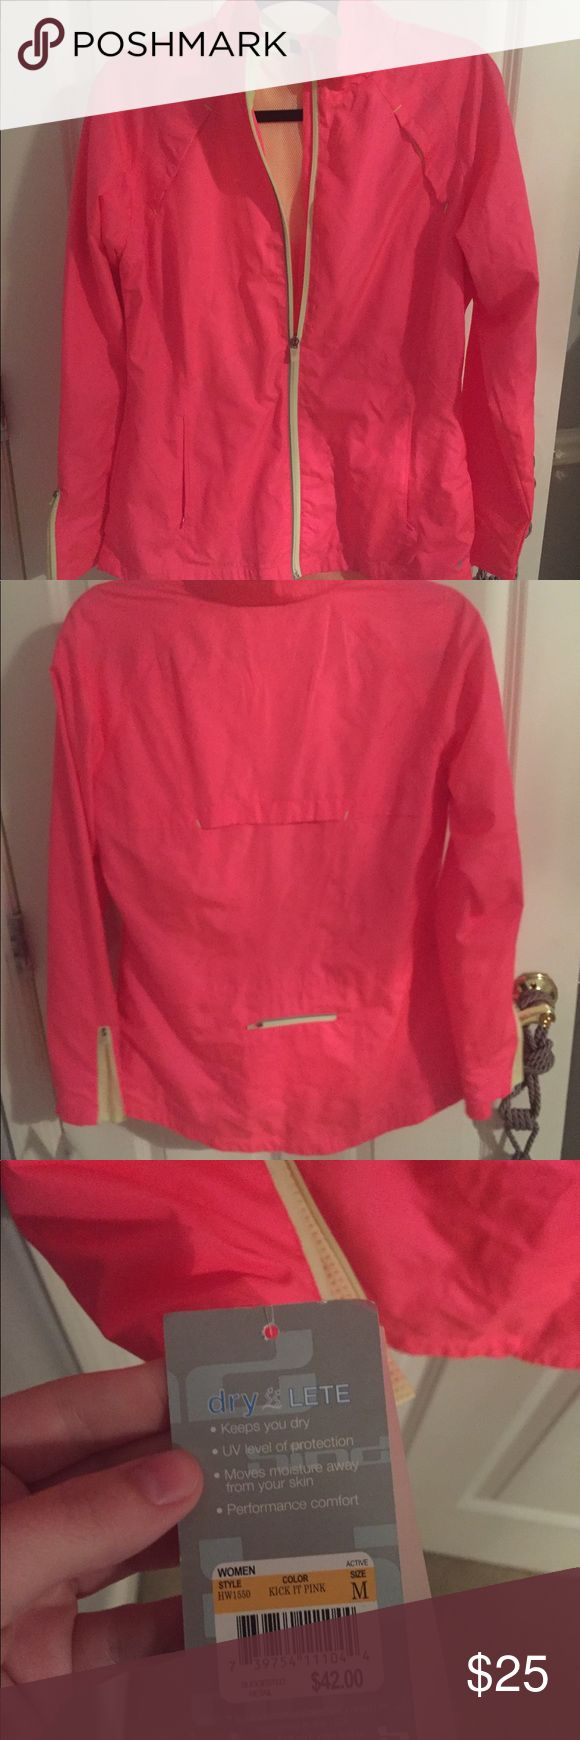 Hind neon pink zip up windbreaker jacket NWT M Never worn! New with tags! Hind Jackets & Coats Utility Jackets